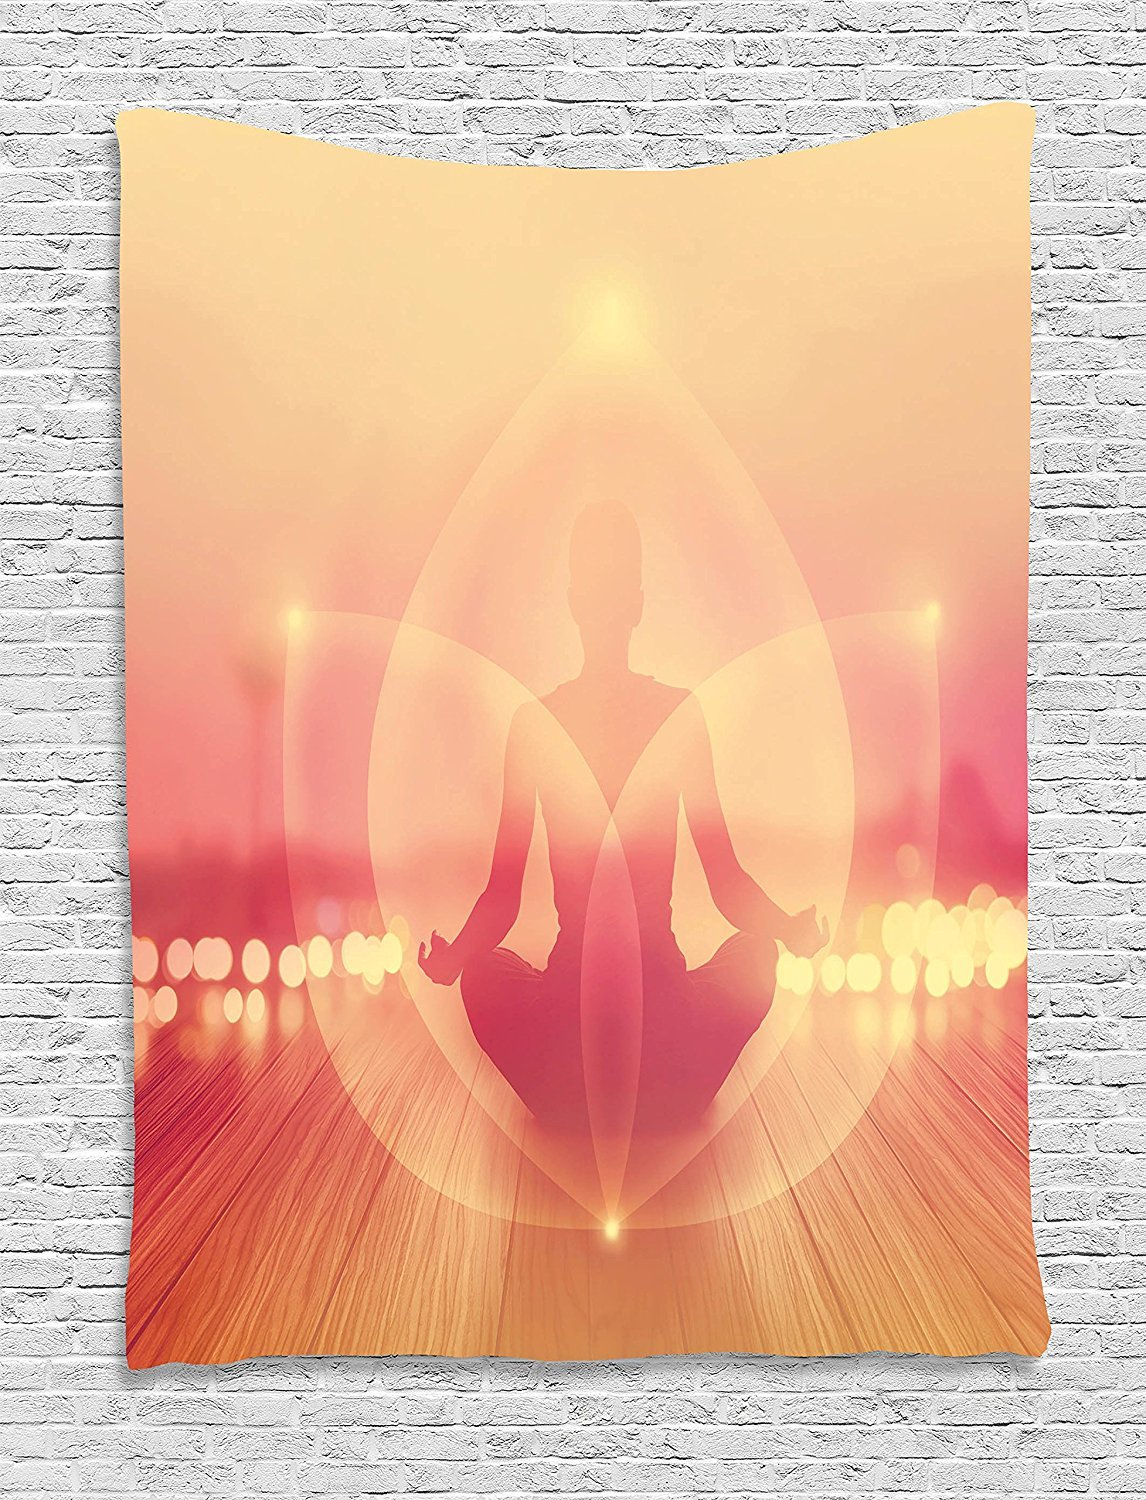 asddcdfdd Yoga Tapestry, Silhouette of Woman Meditating in Sunrise Energy of Light Zen Peace Boho Picture, Wall Hanging for Bedroom Living Room Dorm, 60 W x 80 L Inches, Dark Coral Peach